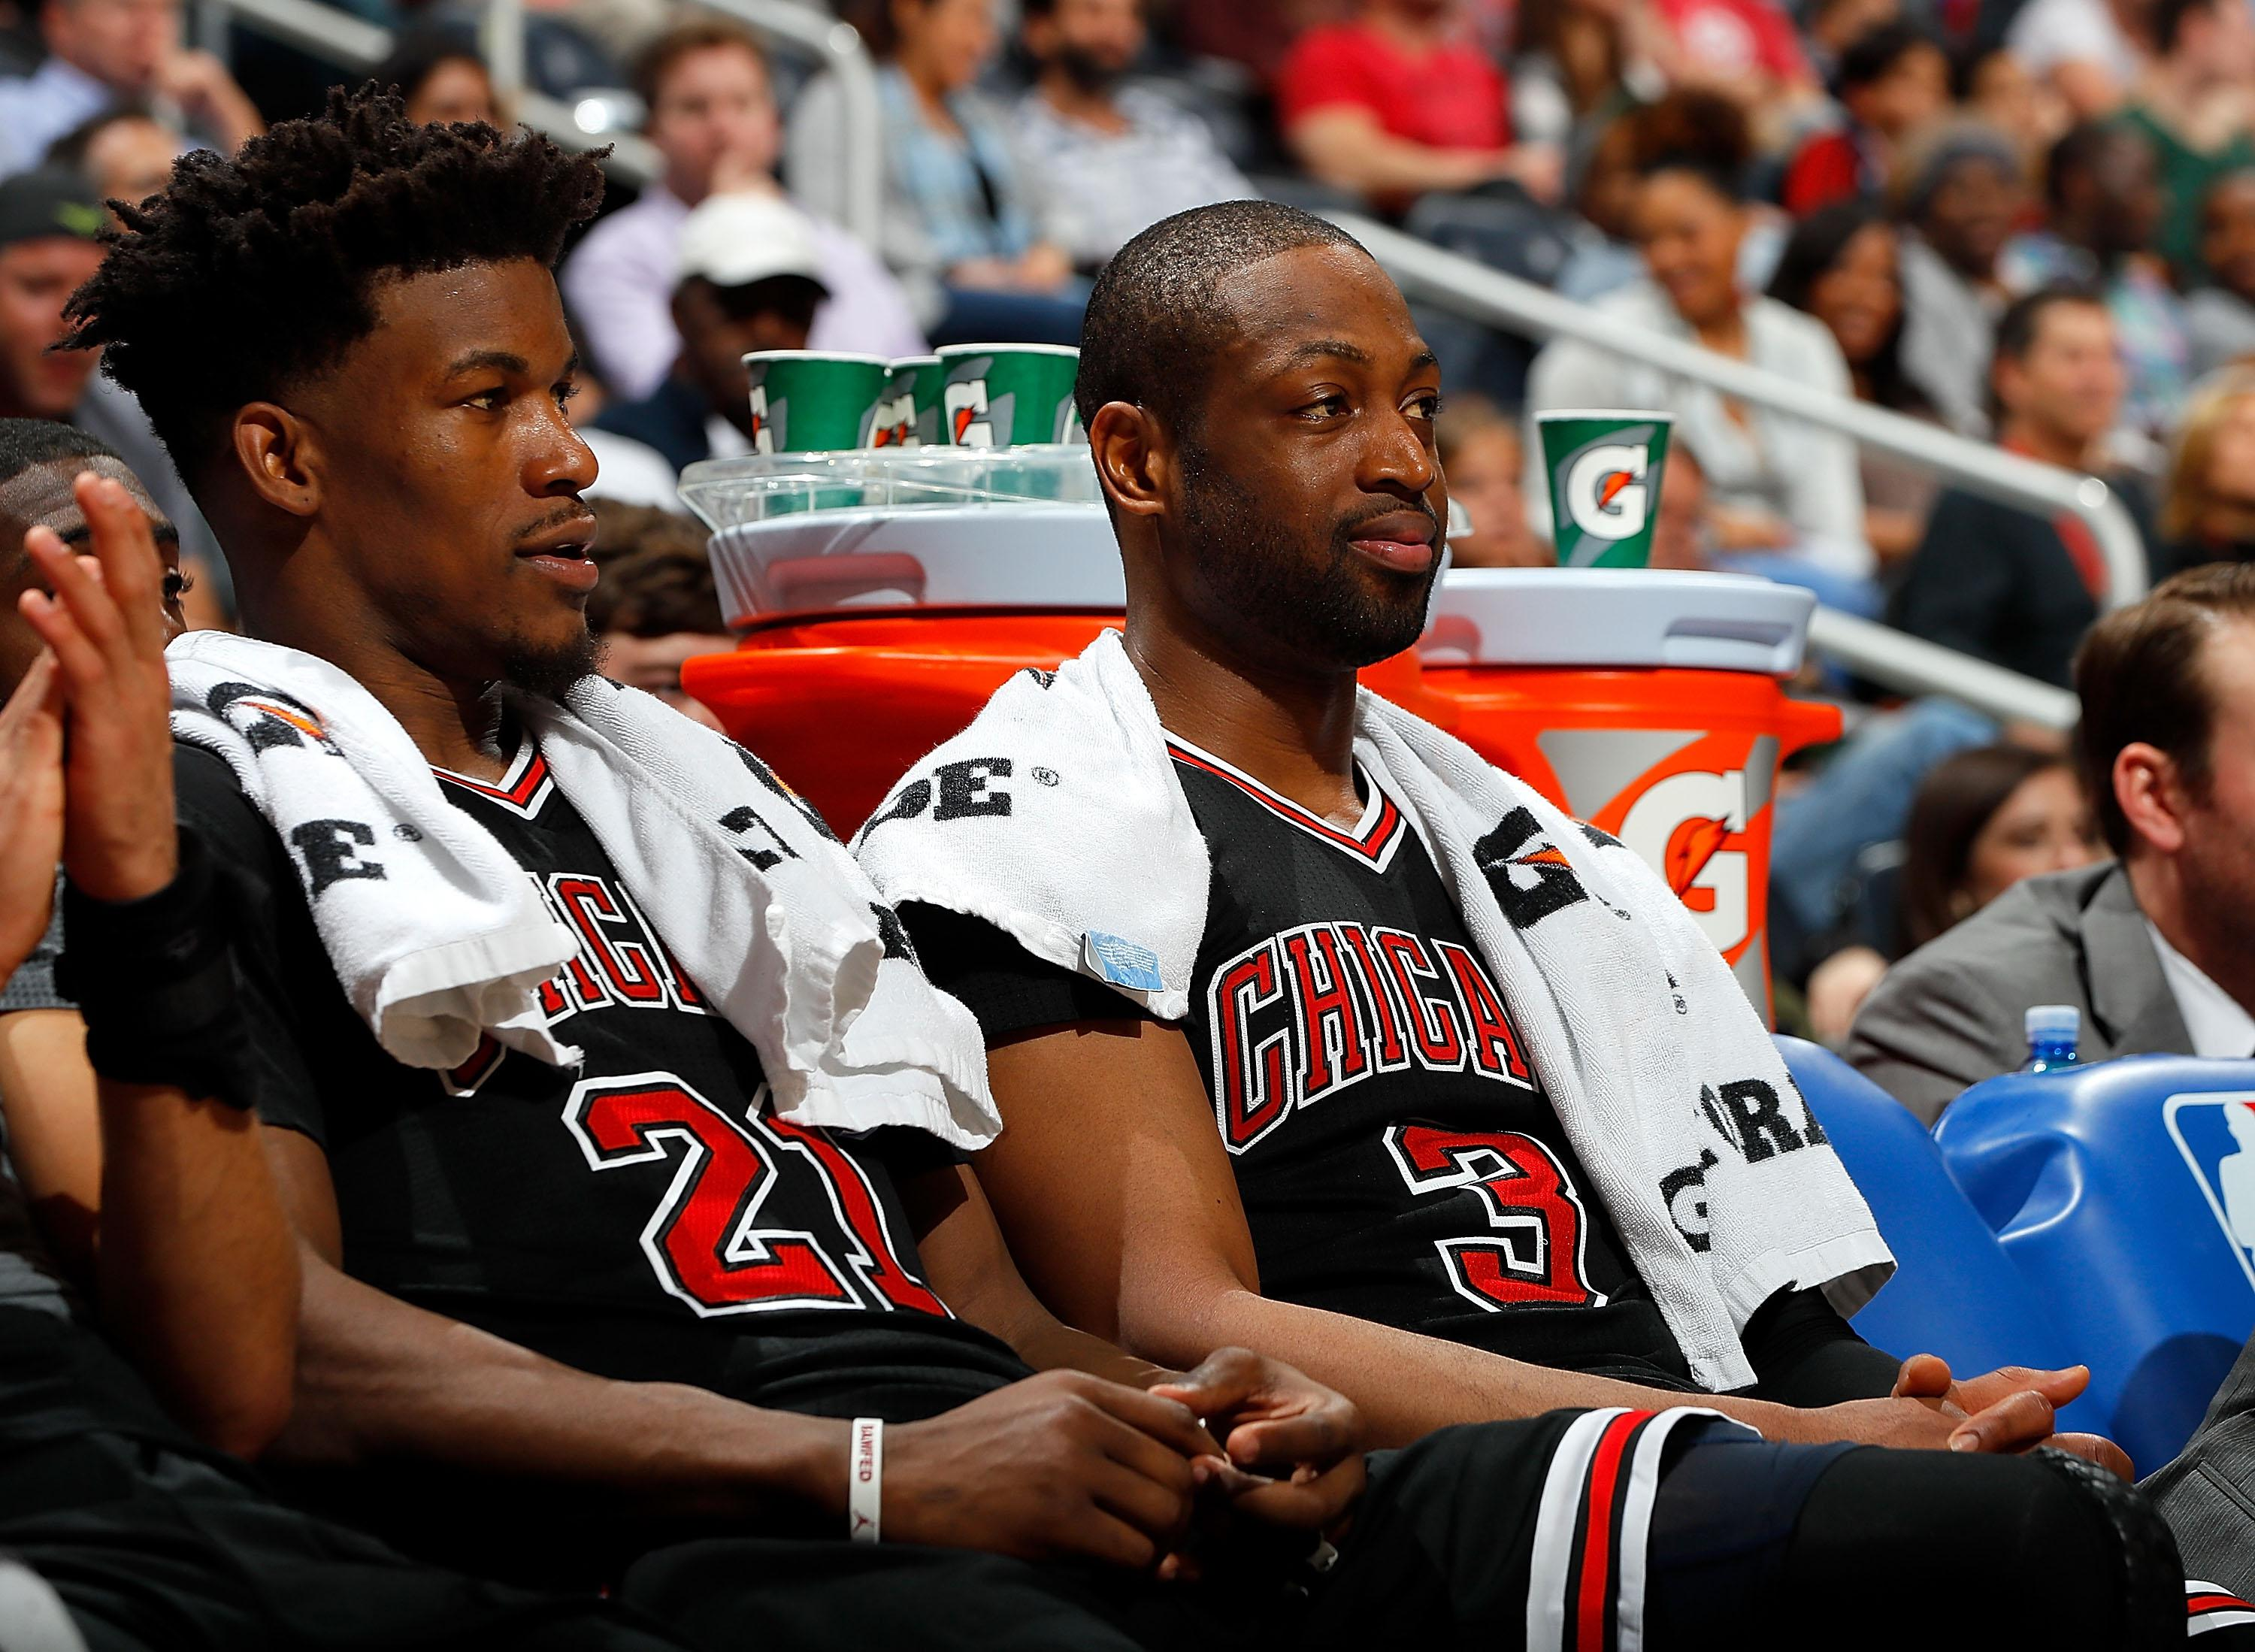 ATLANTA, GA - JANUARY 20:  Jimmy Butler #21 and Dwyane Wade #3 of the Chicago Bulls look on from the bench during the game against the Atlanta Hawks at Philips Arena on January 20, 2017 in Atlanta, Georgia.  NOTE TO USER User expressly acknowledges and agrees that, by downloading and or using this photograph, user is consenting to the terms and conditions of the Getty Images License Agreement.  (Photo by Kevin C. Cox/Getty Images)